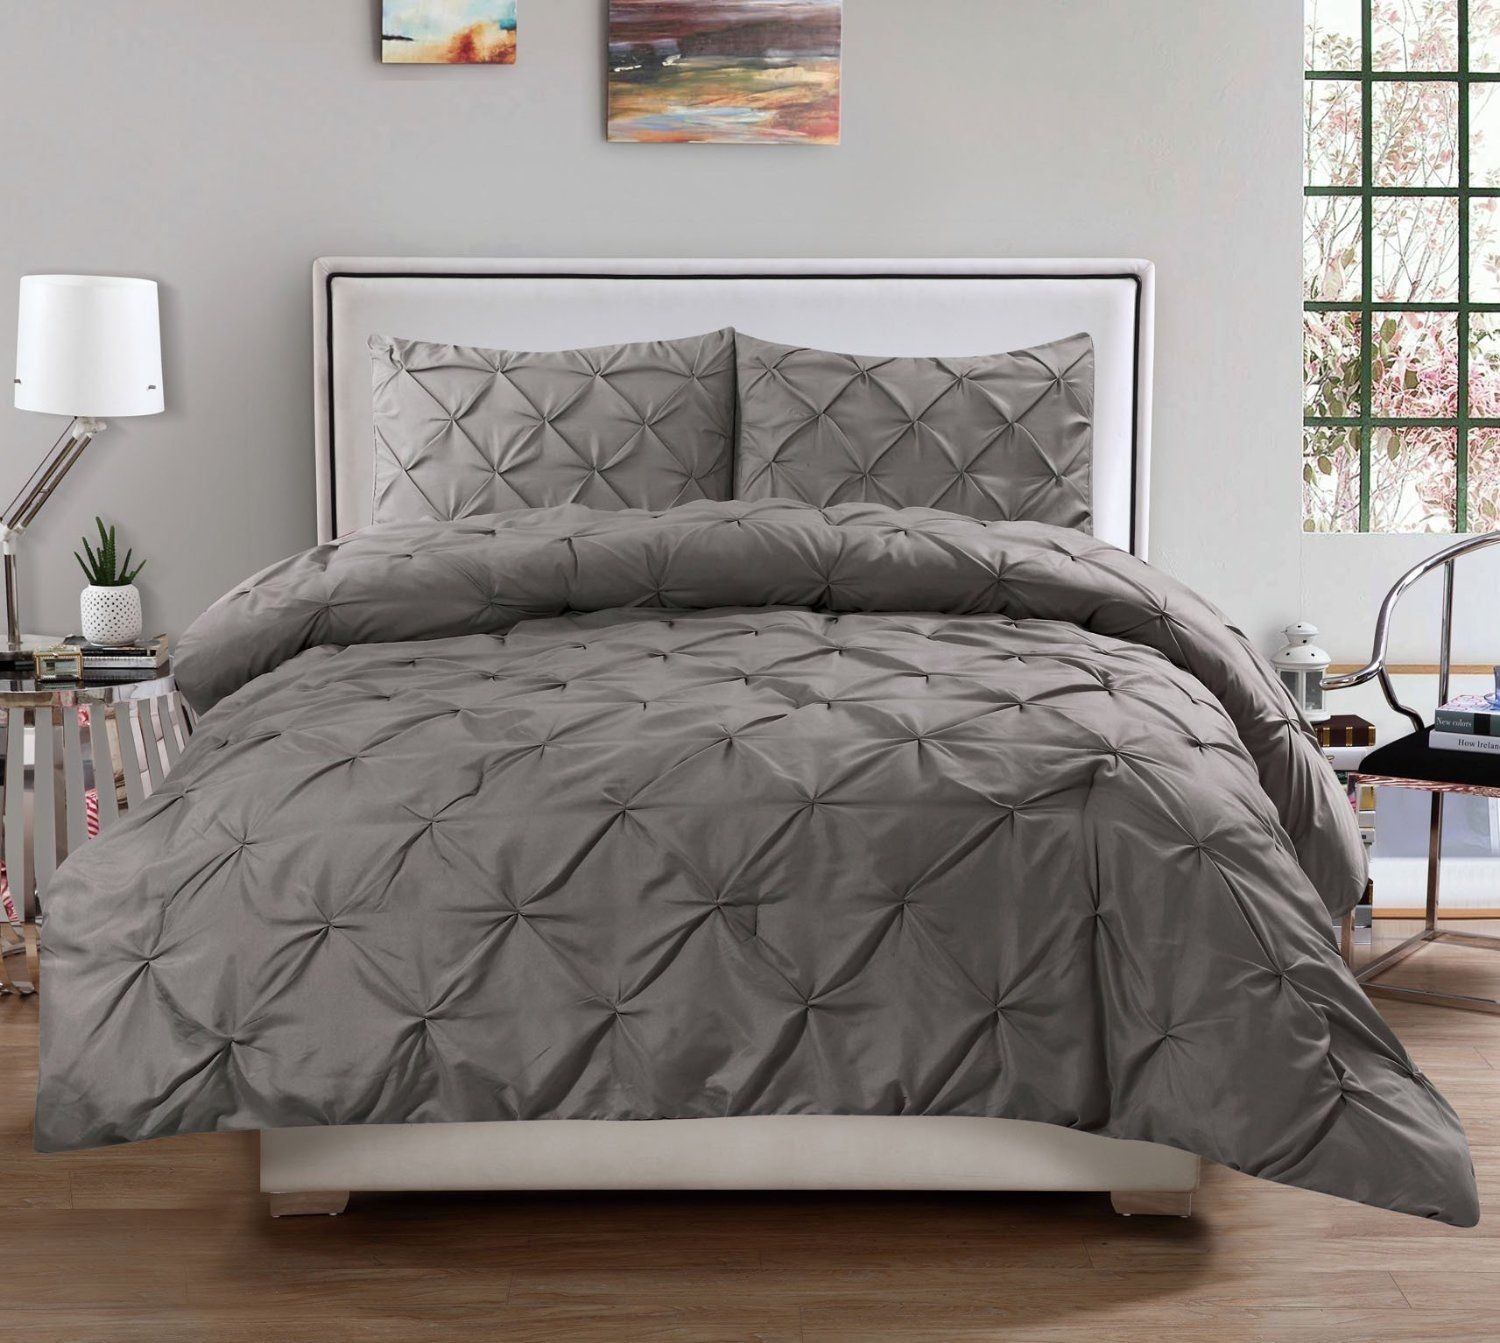 grey comforter for materials luxurious set ecrins theme lodge sets most